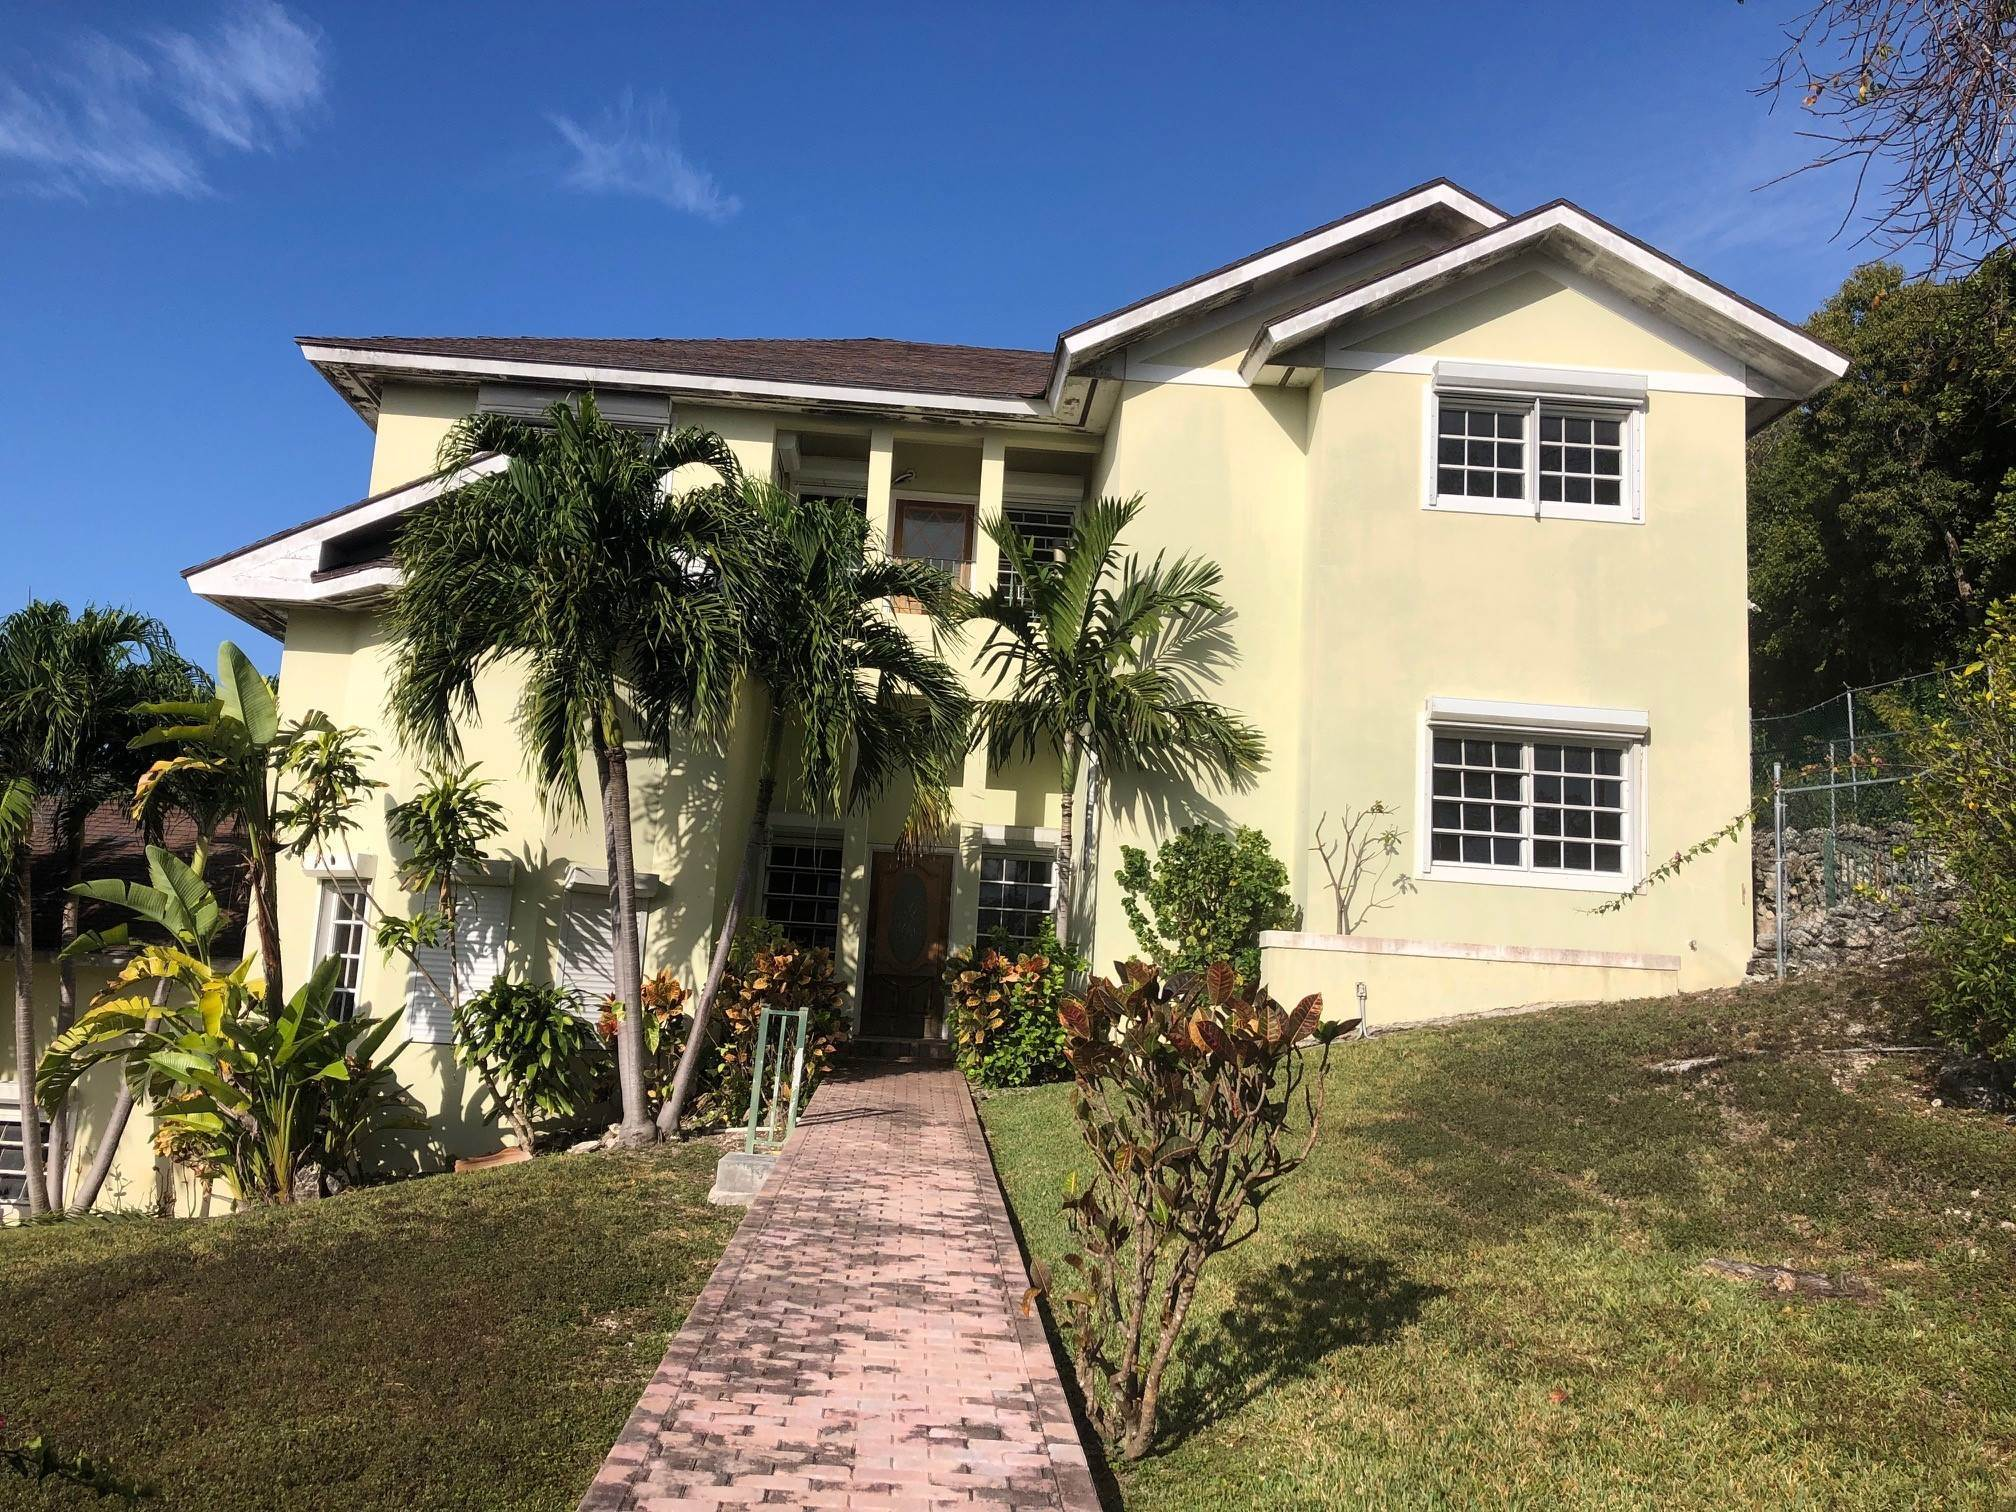 11. Single Family Homes for Sale at Lyford Cay Great Investment Potential - MLS 43600 Lyford Cay, Nassau And Paradise Island, Bahamas